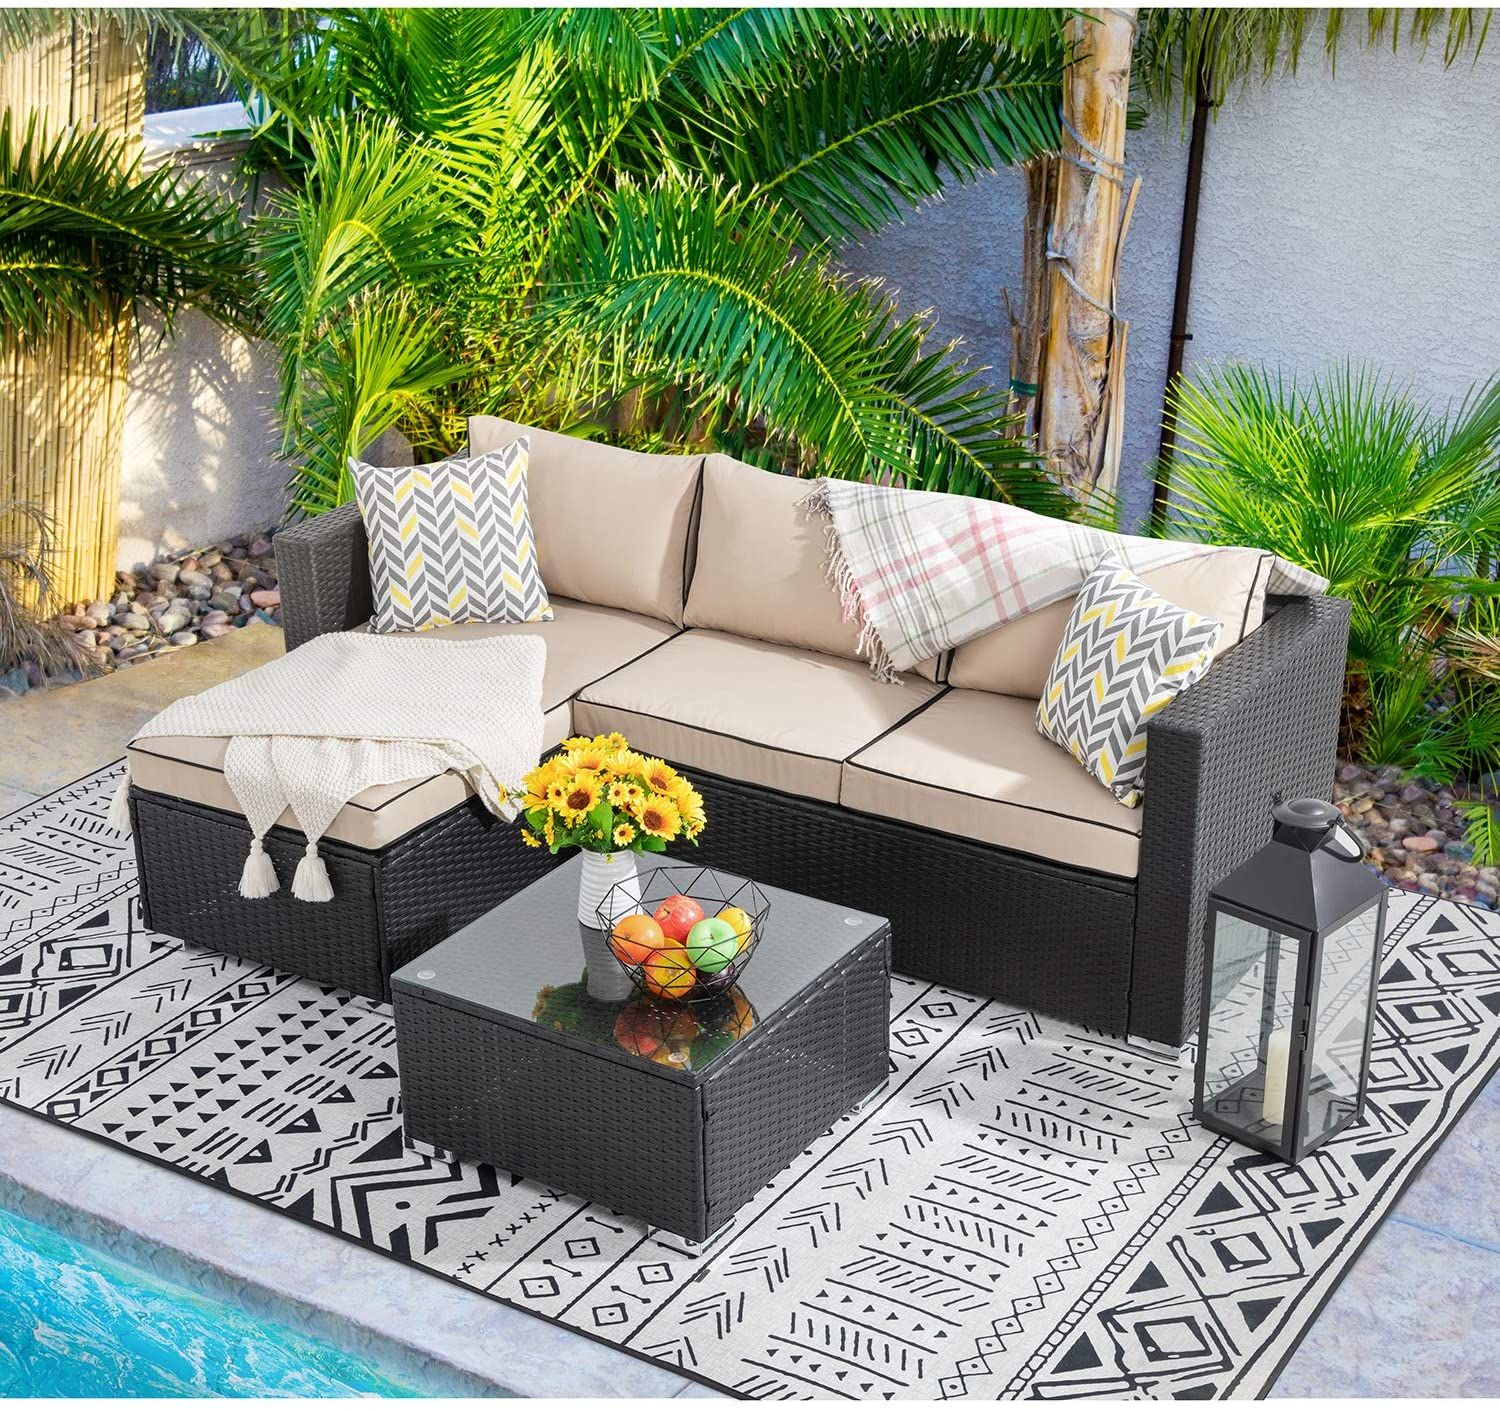 Amazon Com Walsunny Outdoor Furniture Patio Sets Low Back All Weather Small Rattan Sectional Sofa With Tea Table In 2020 Patio Set Furniture Outdoor Sectional Sofa